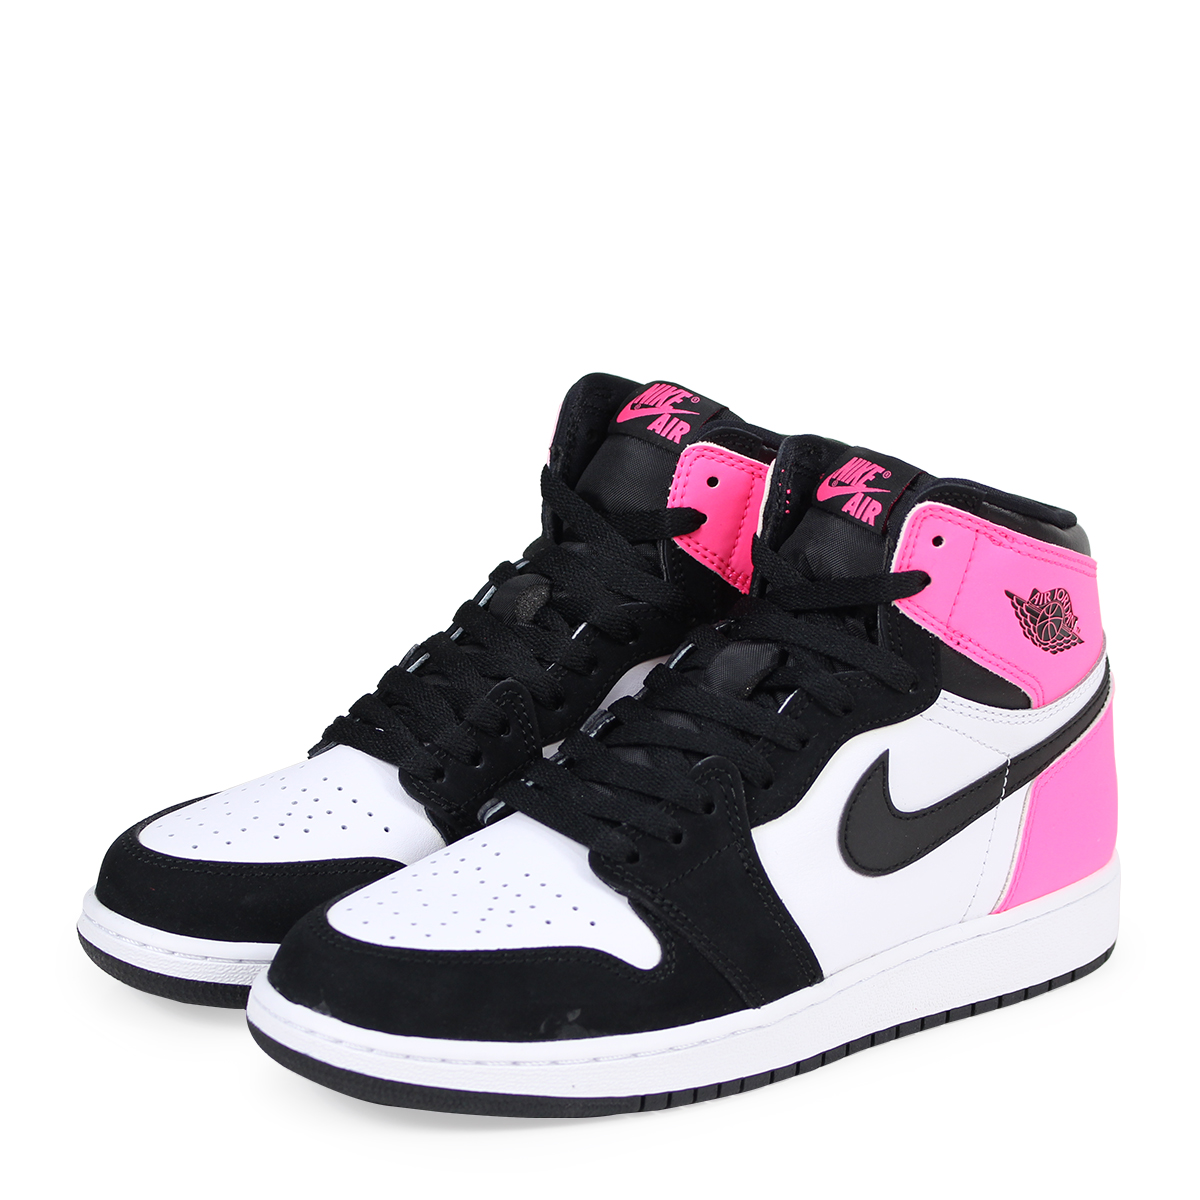 Allsports Nike Air Jordan 1 Retro High Og Gs Valentines Day Nike